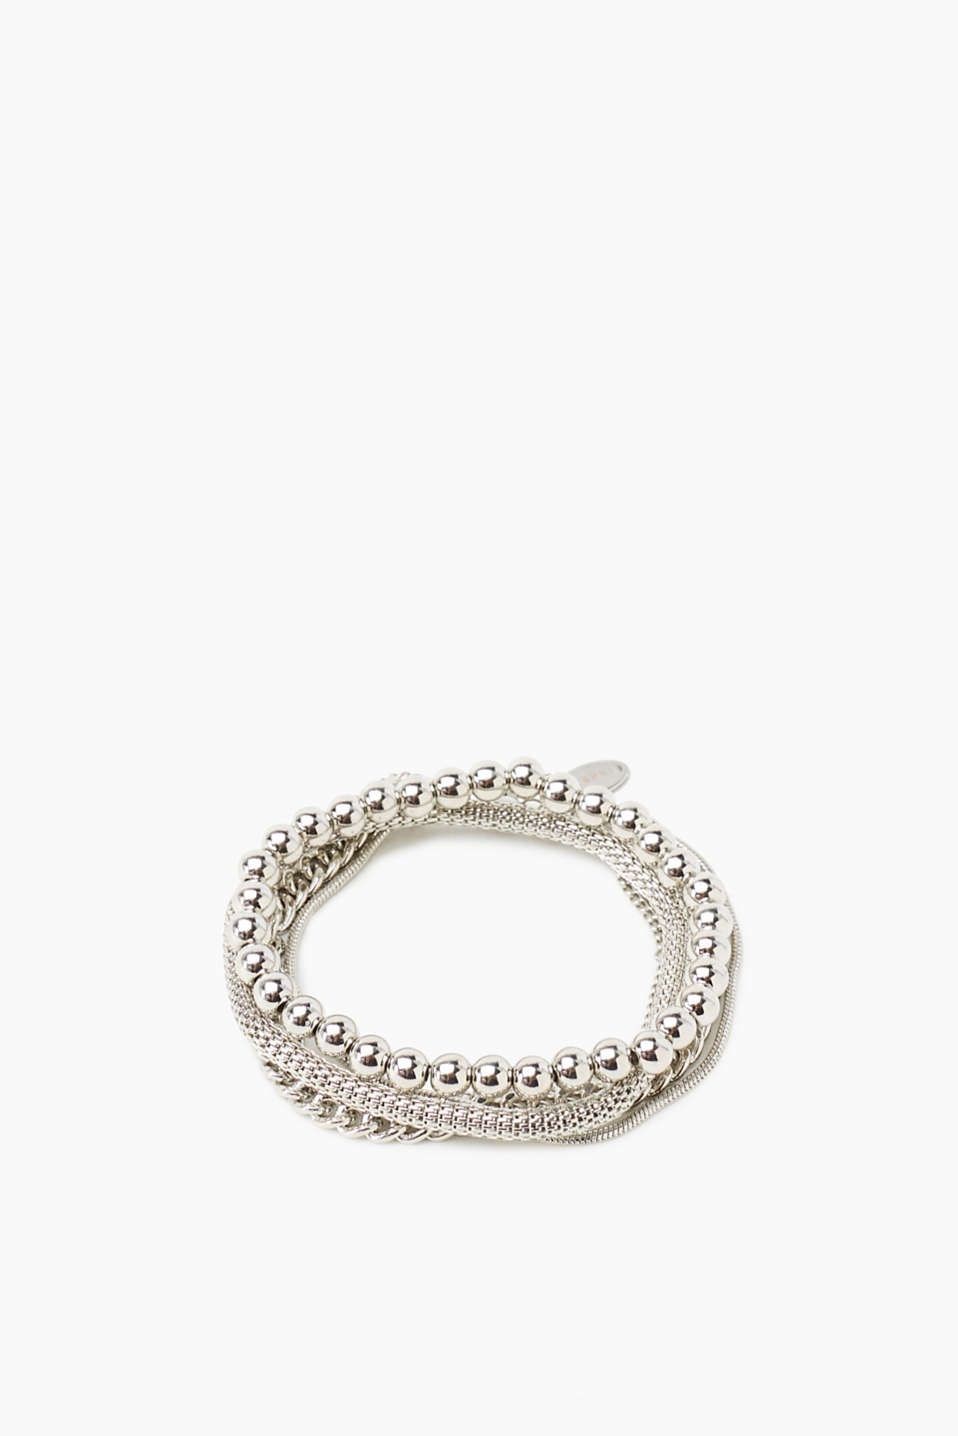 In a high-quality metal alloy: Set of an elastic beaded bracelet and a curb chain bracelet as well as a multi-row bracelet